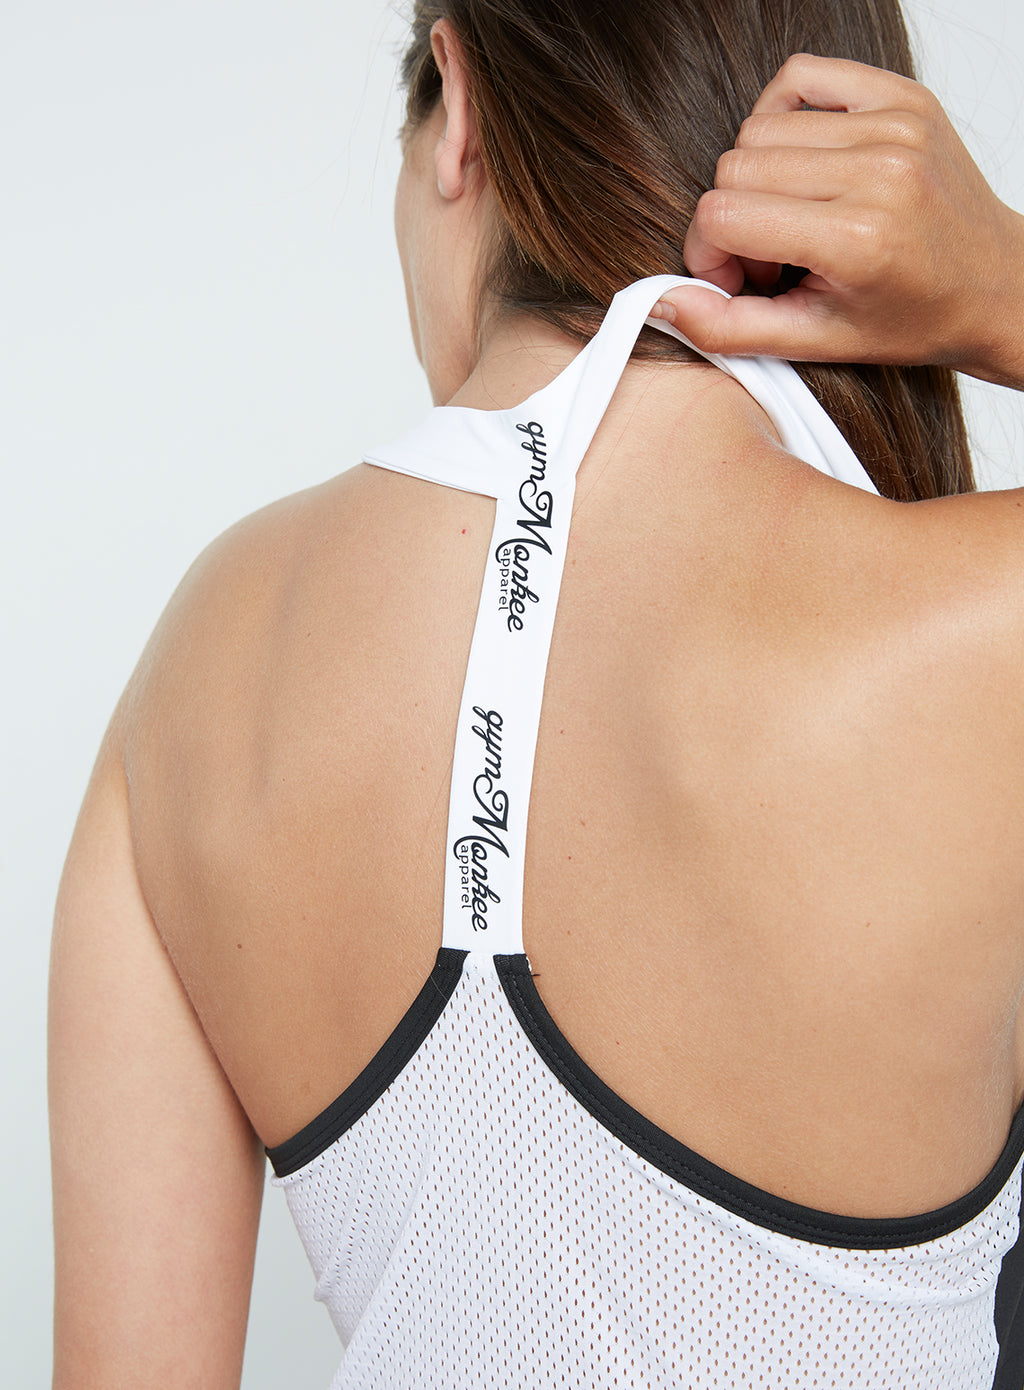 Gym Monkee - Ladies Black and White Strap Top SHOULDERS